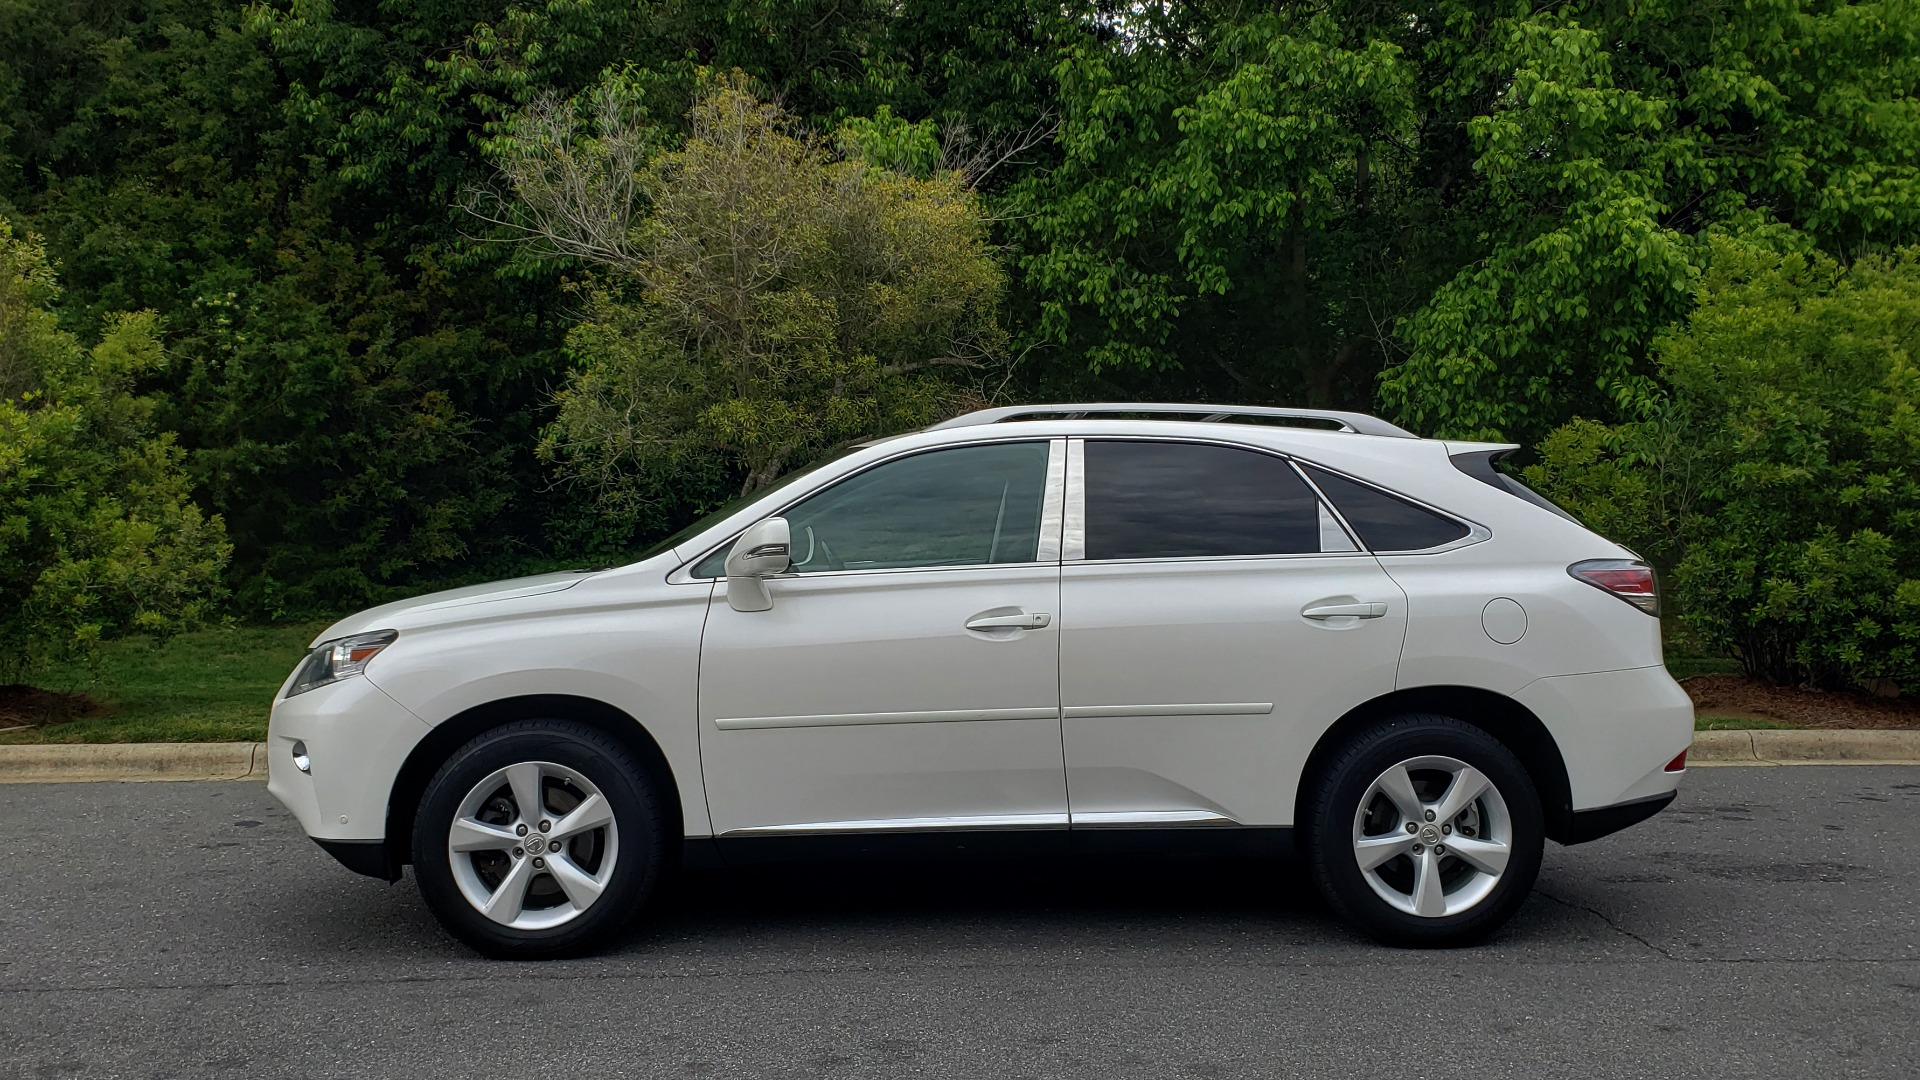 Used 2013 Lexus RX 350 PREMIUM PKG / SUNROOF / BSM / PARK ASST / REARVIEW for sale Sold at Formula Imports in Charlotte NC 28227 2